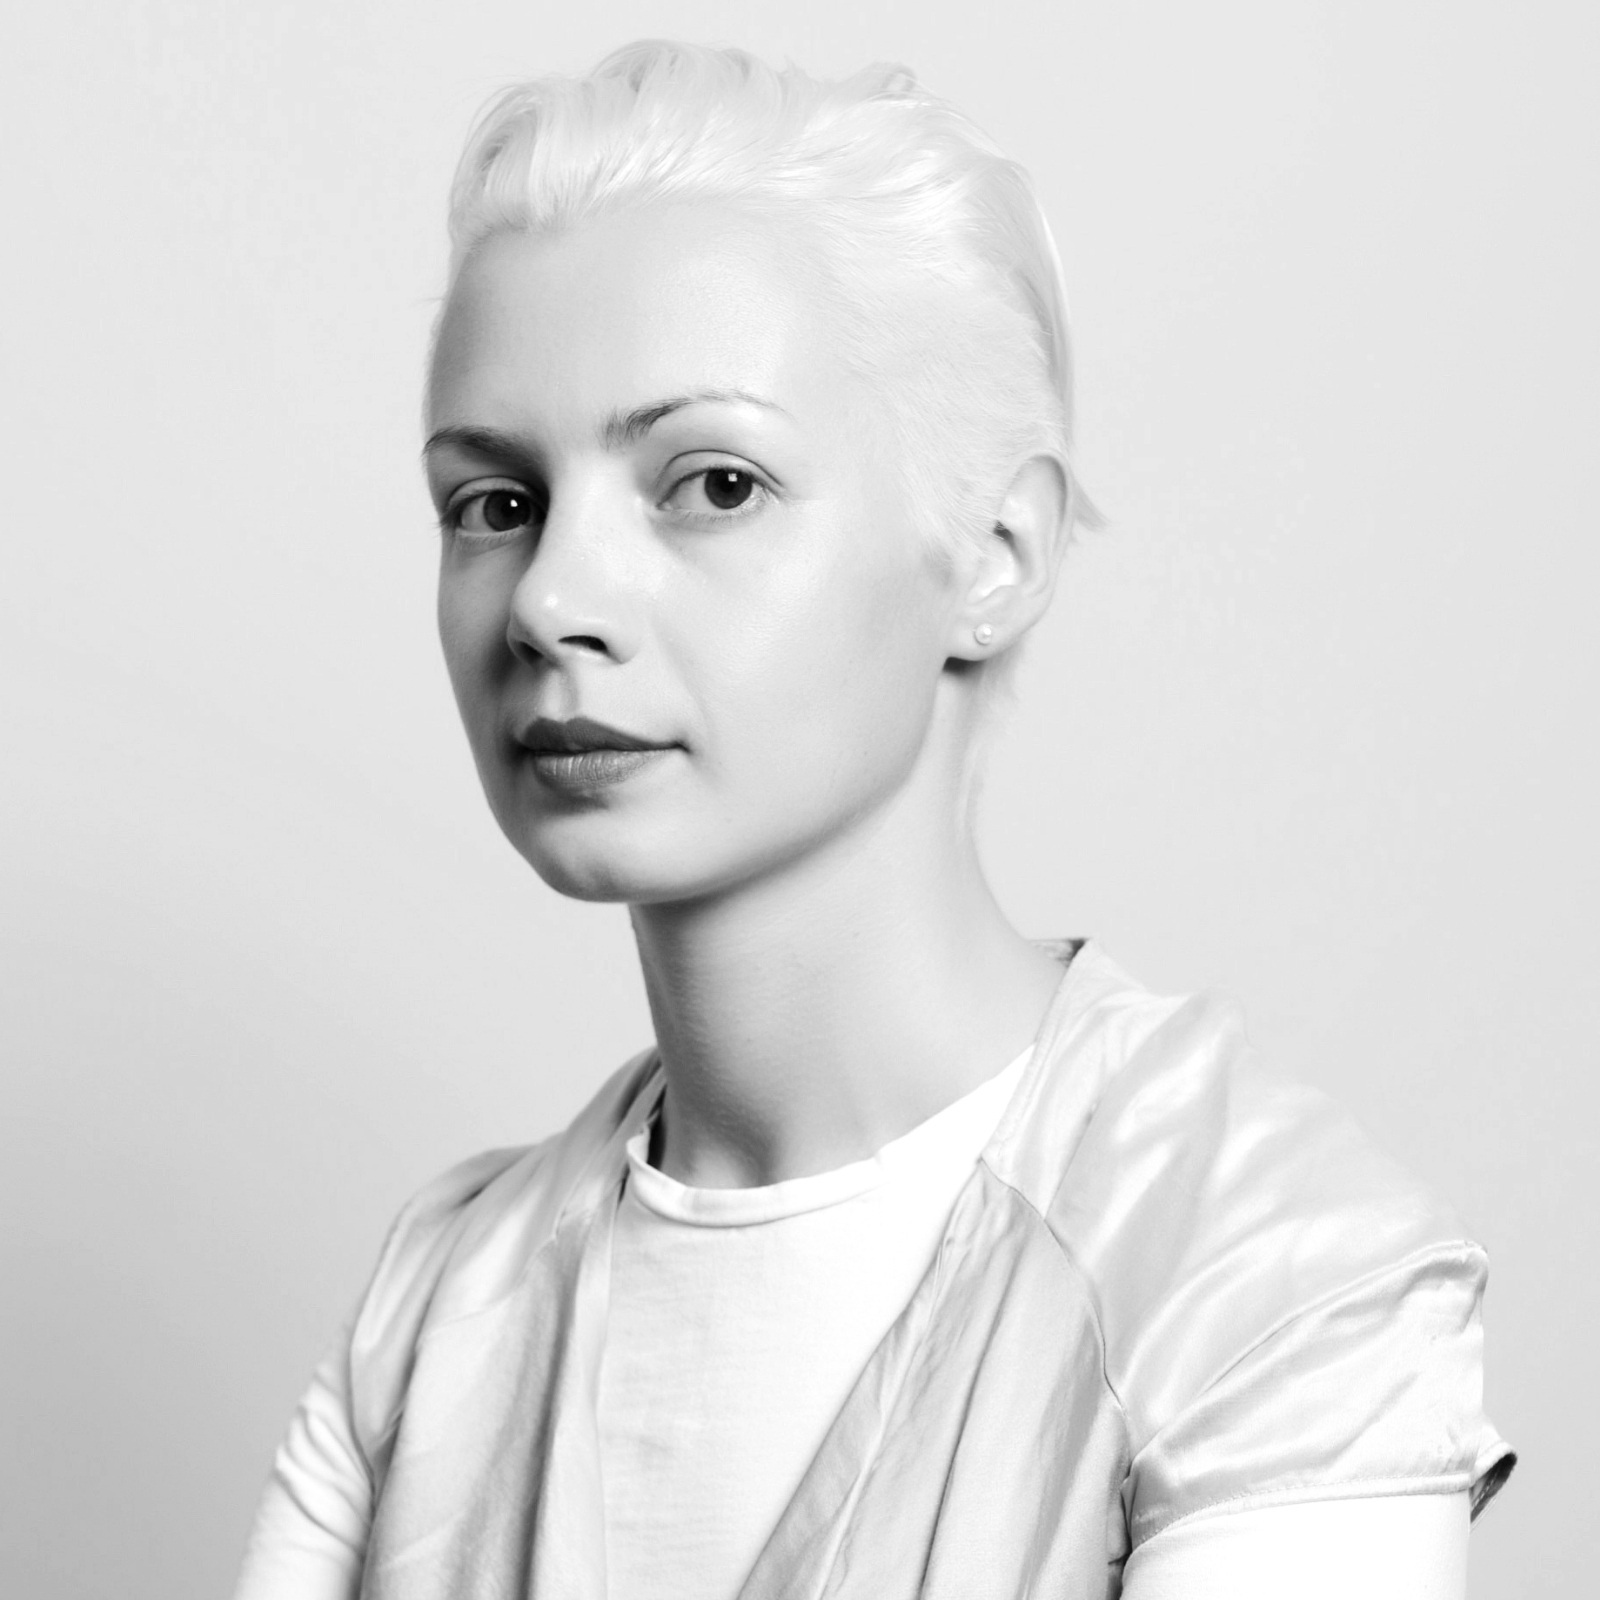 Christina Steinbrecher-Pfandt - Former director, VIennacontemporary; founder blockchain.art